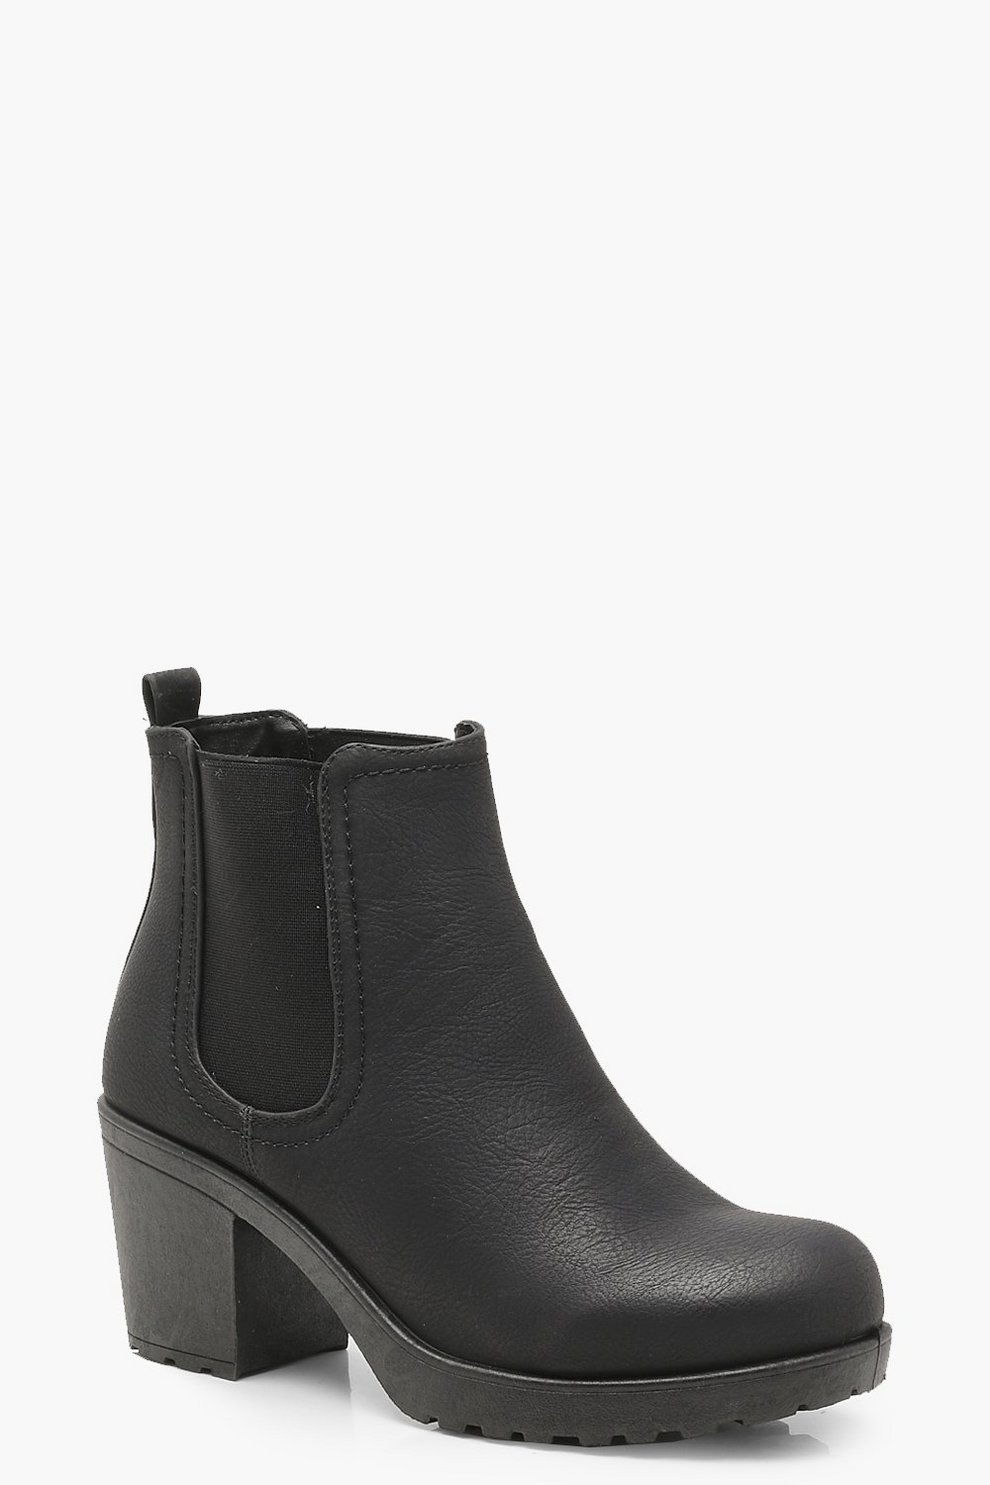 ce47660538 Wide Fit Chunky Cleated Heel Chelsea Boots | Boohoo